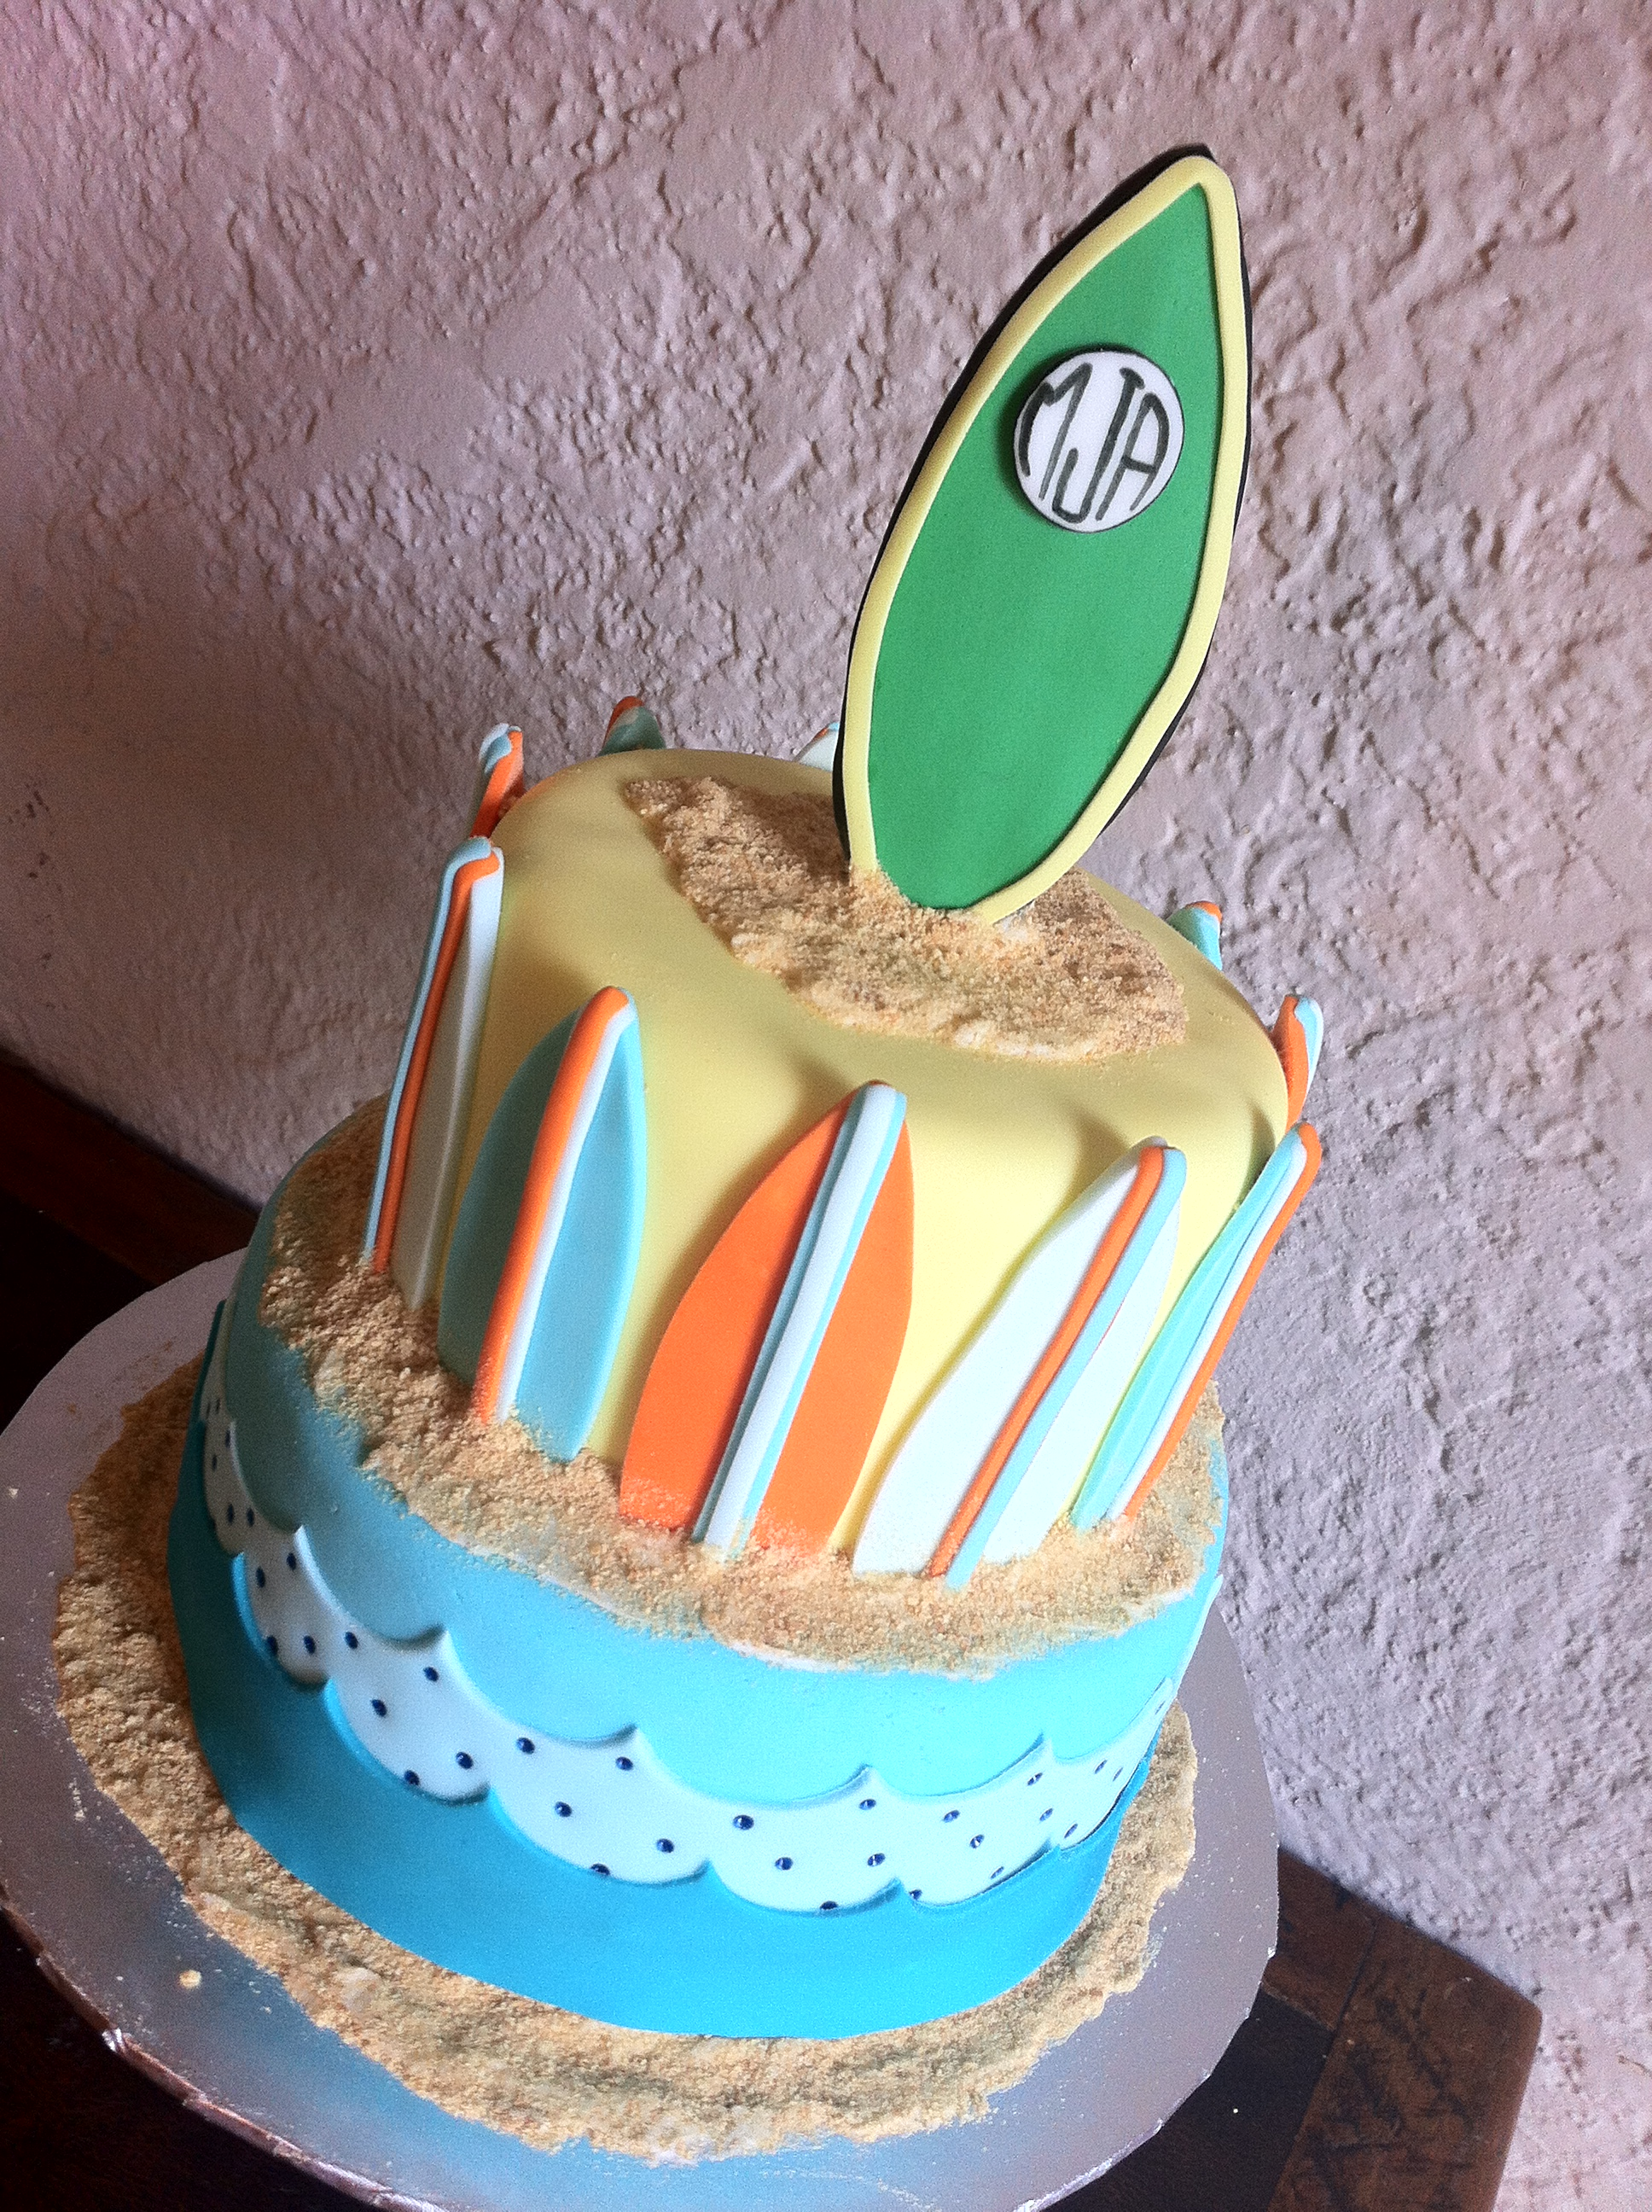 Wondrous Surfing Baby Shower Cake With Surfboards Lolos Cakes Sweets Personalised Birthday Cards Petedlily Jamesorg